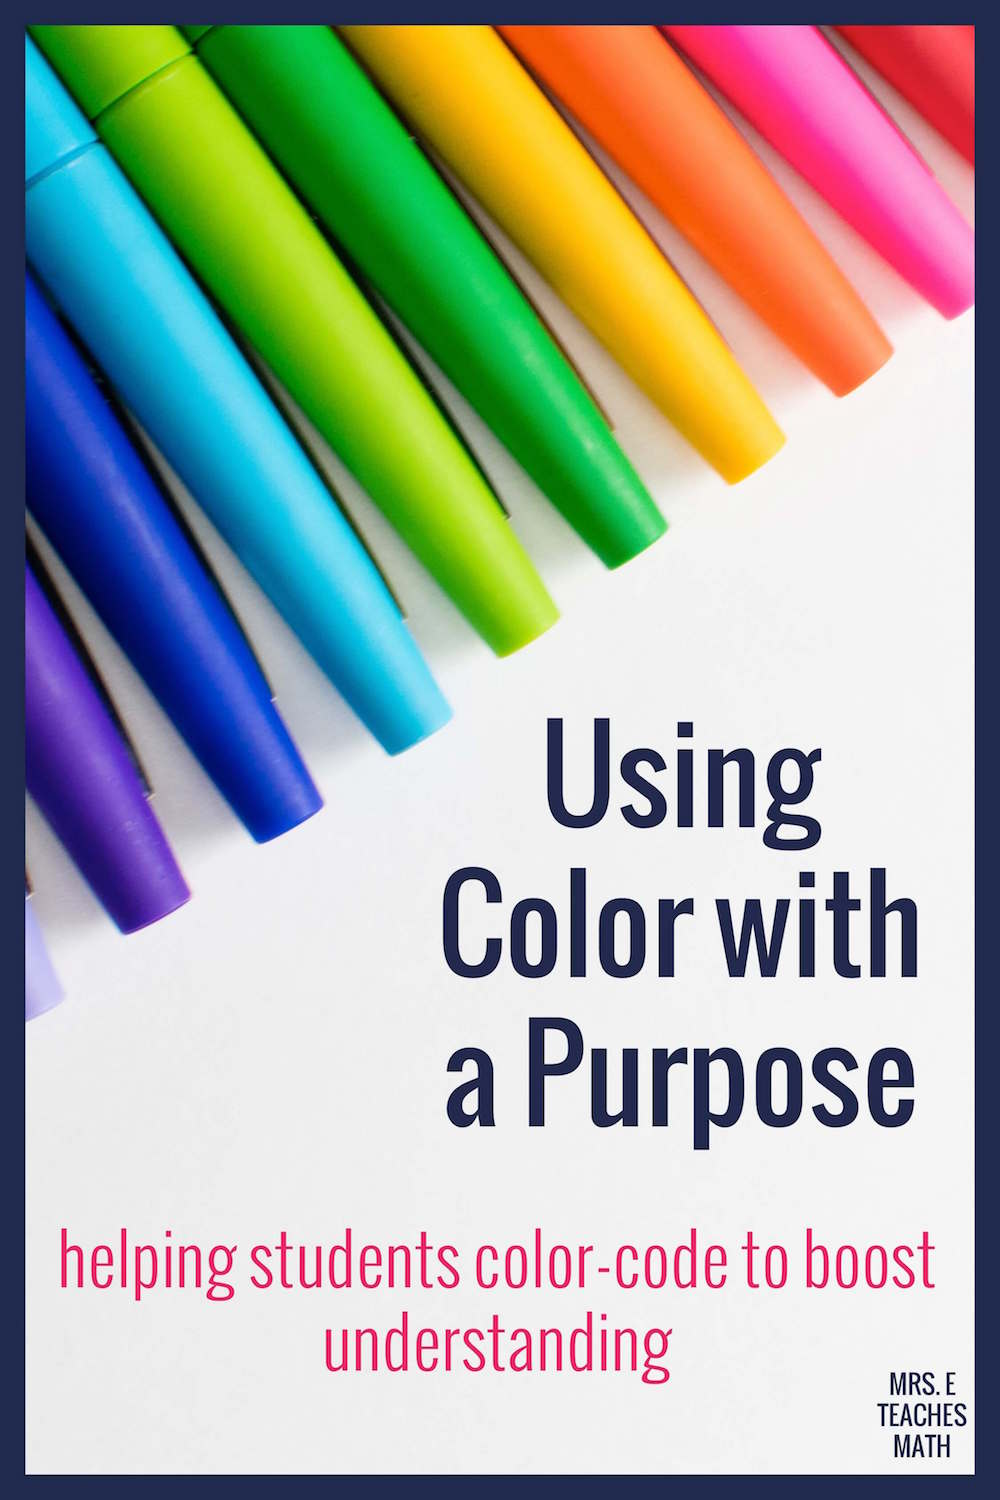 Using Color with a Purpose | Mrs. E Teaches Math